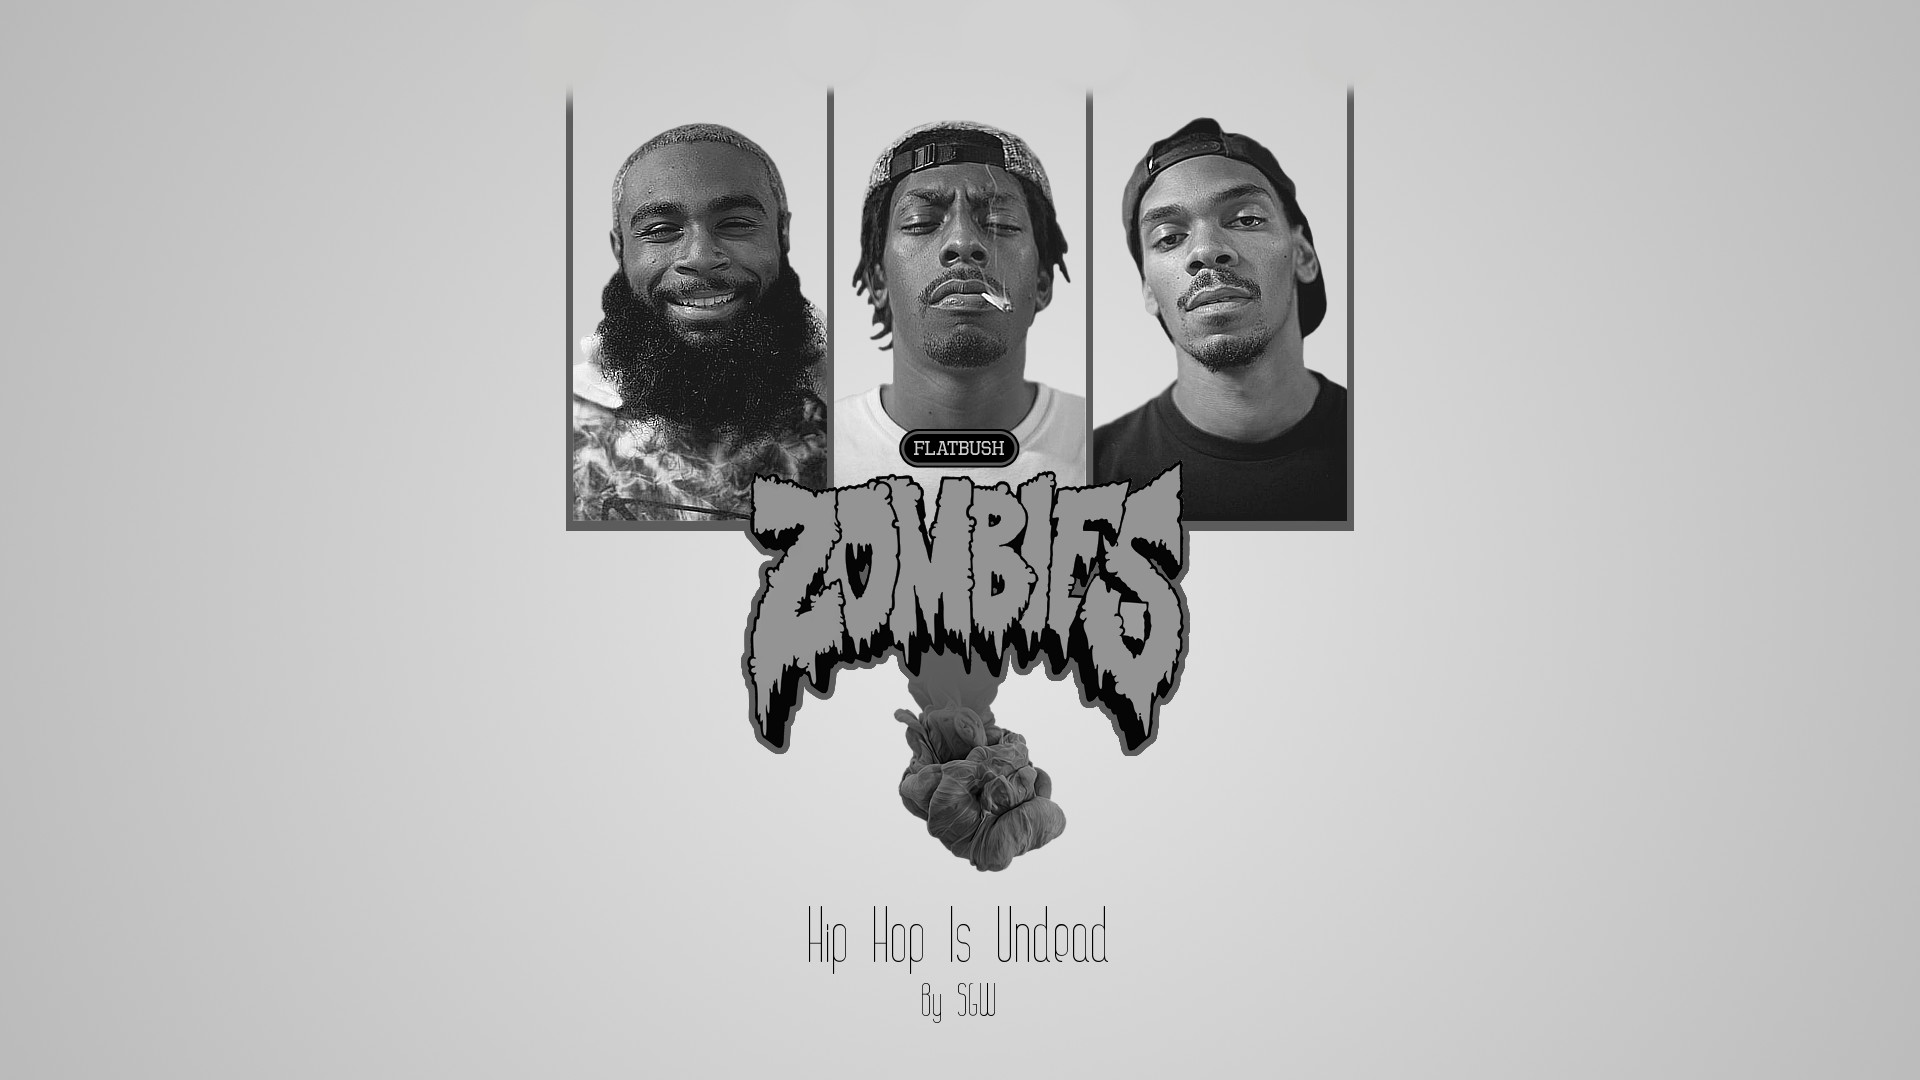 Flatbush zombies day of the dead free download detroitlinoa.